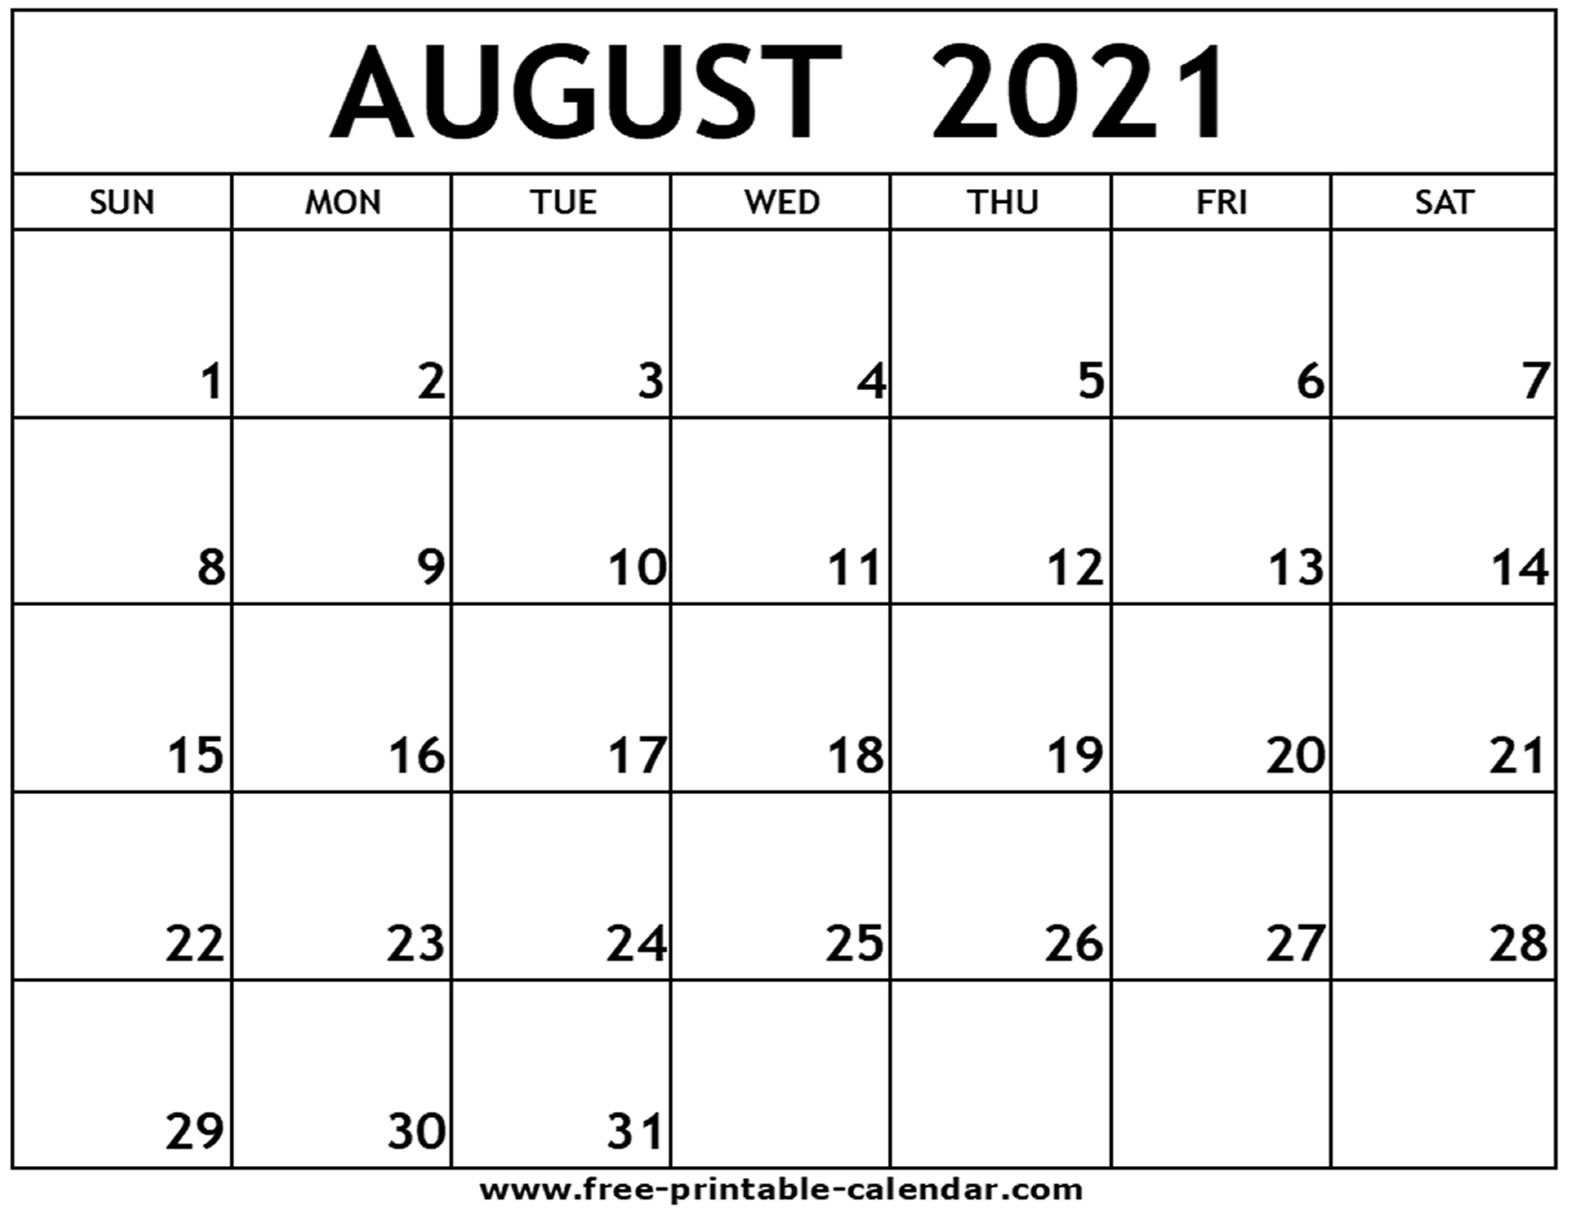 Collect Calendar For August 2021 Printable